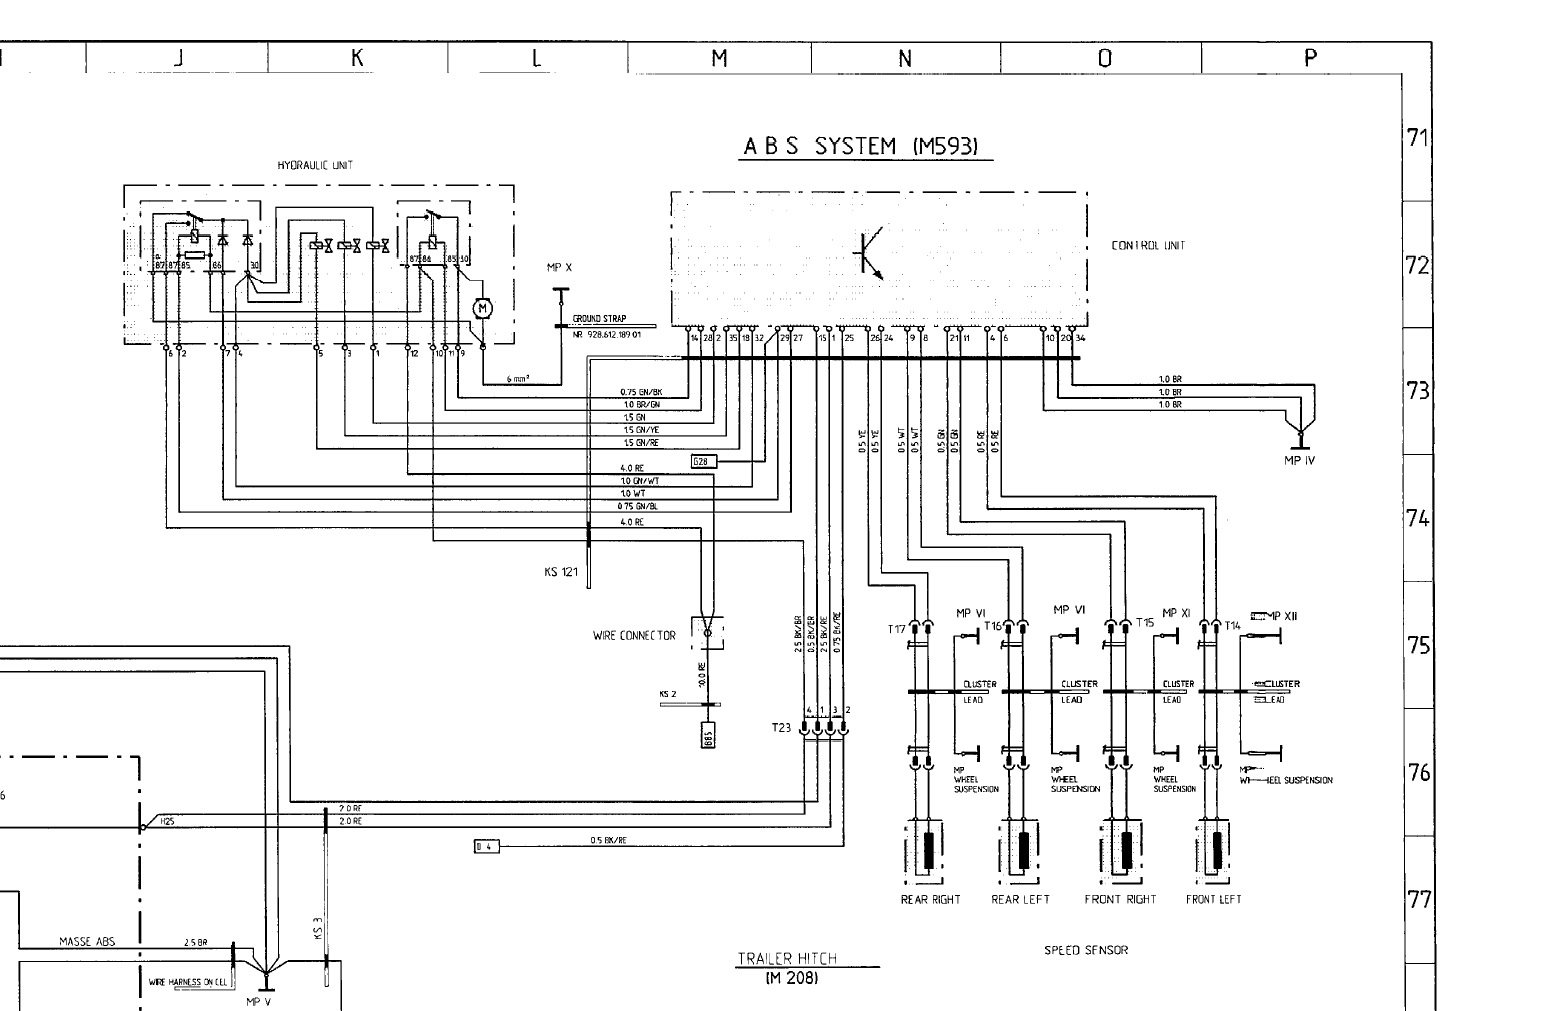 1978 porsche 924 wiring diagram cat 5 a or b 928 somurich